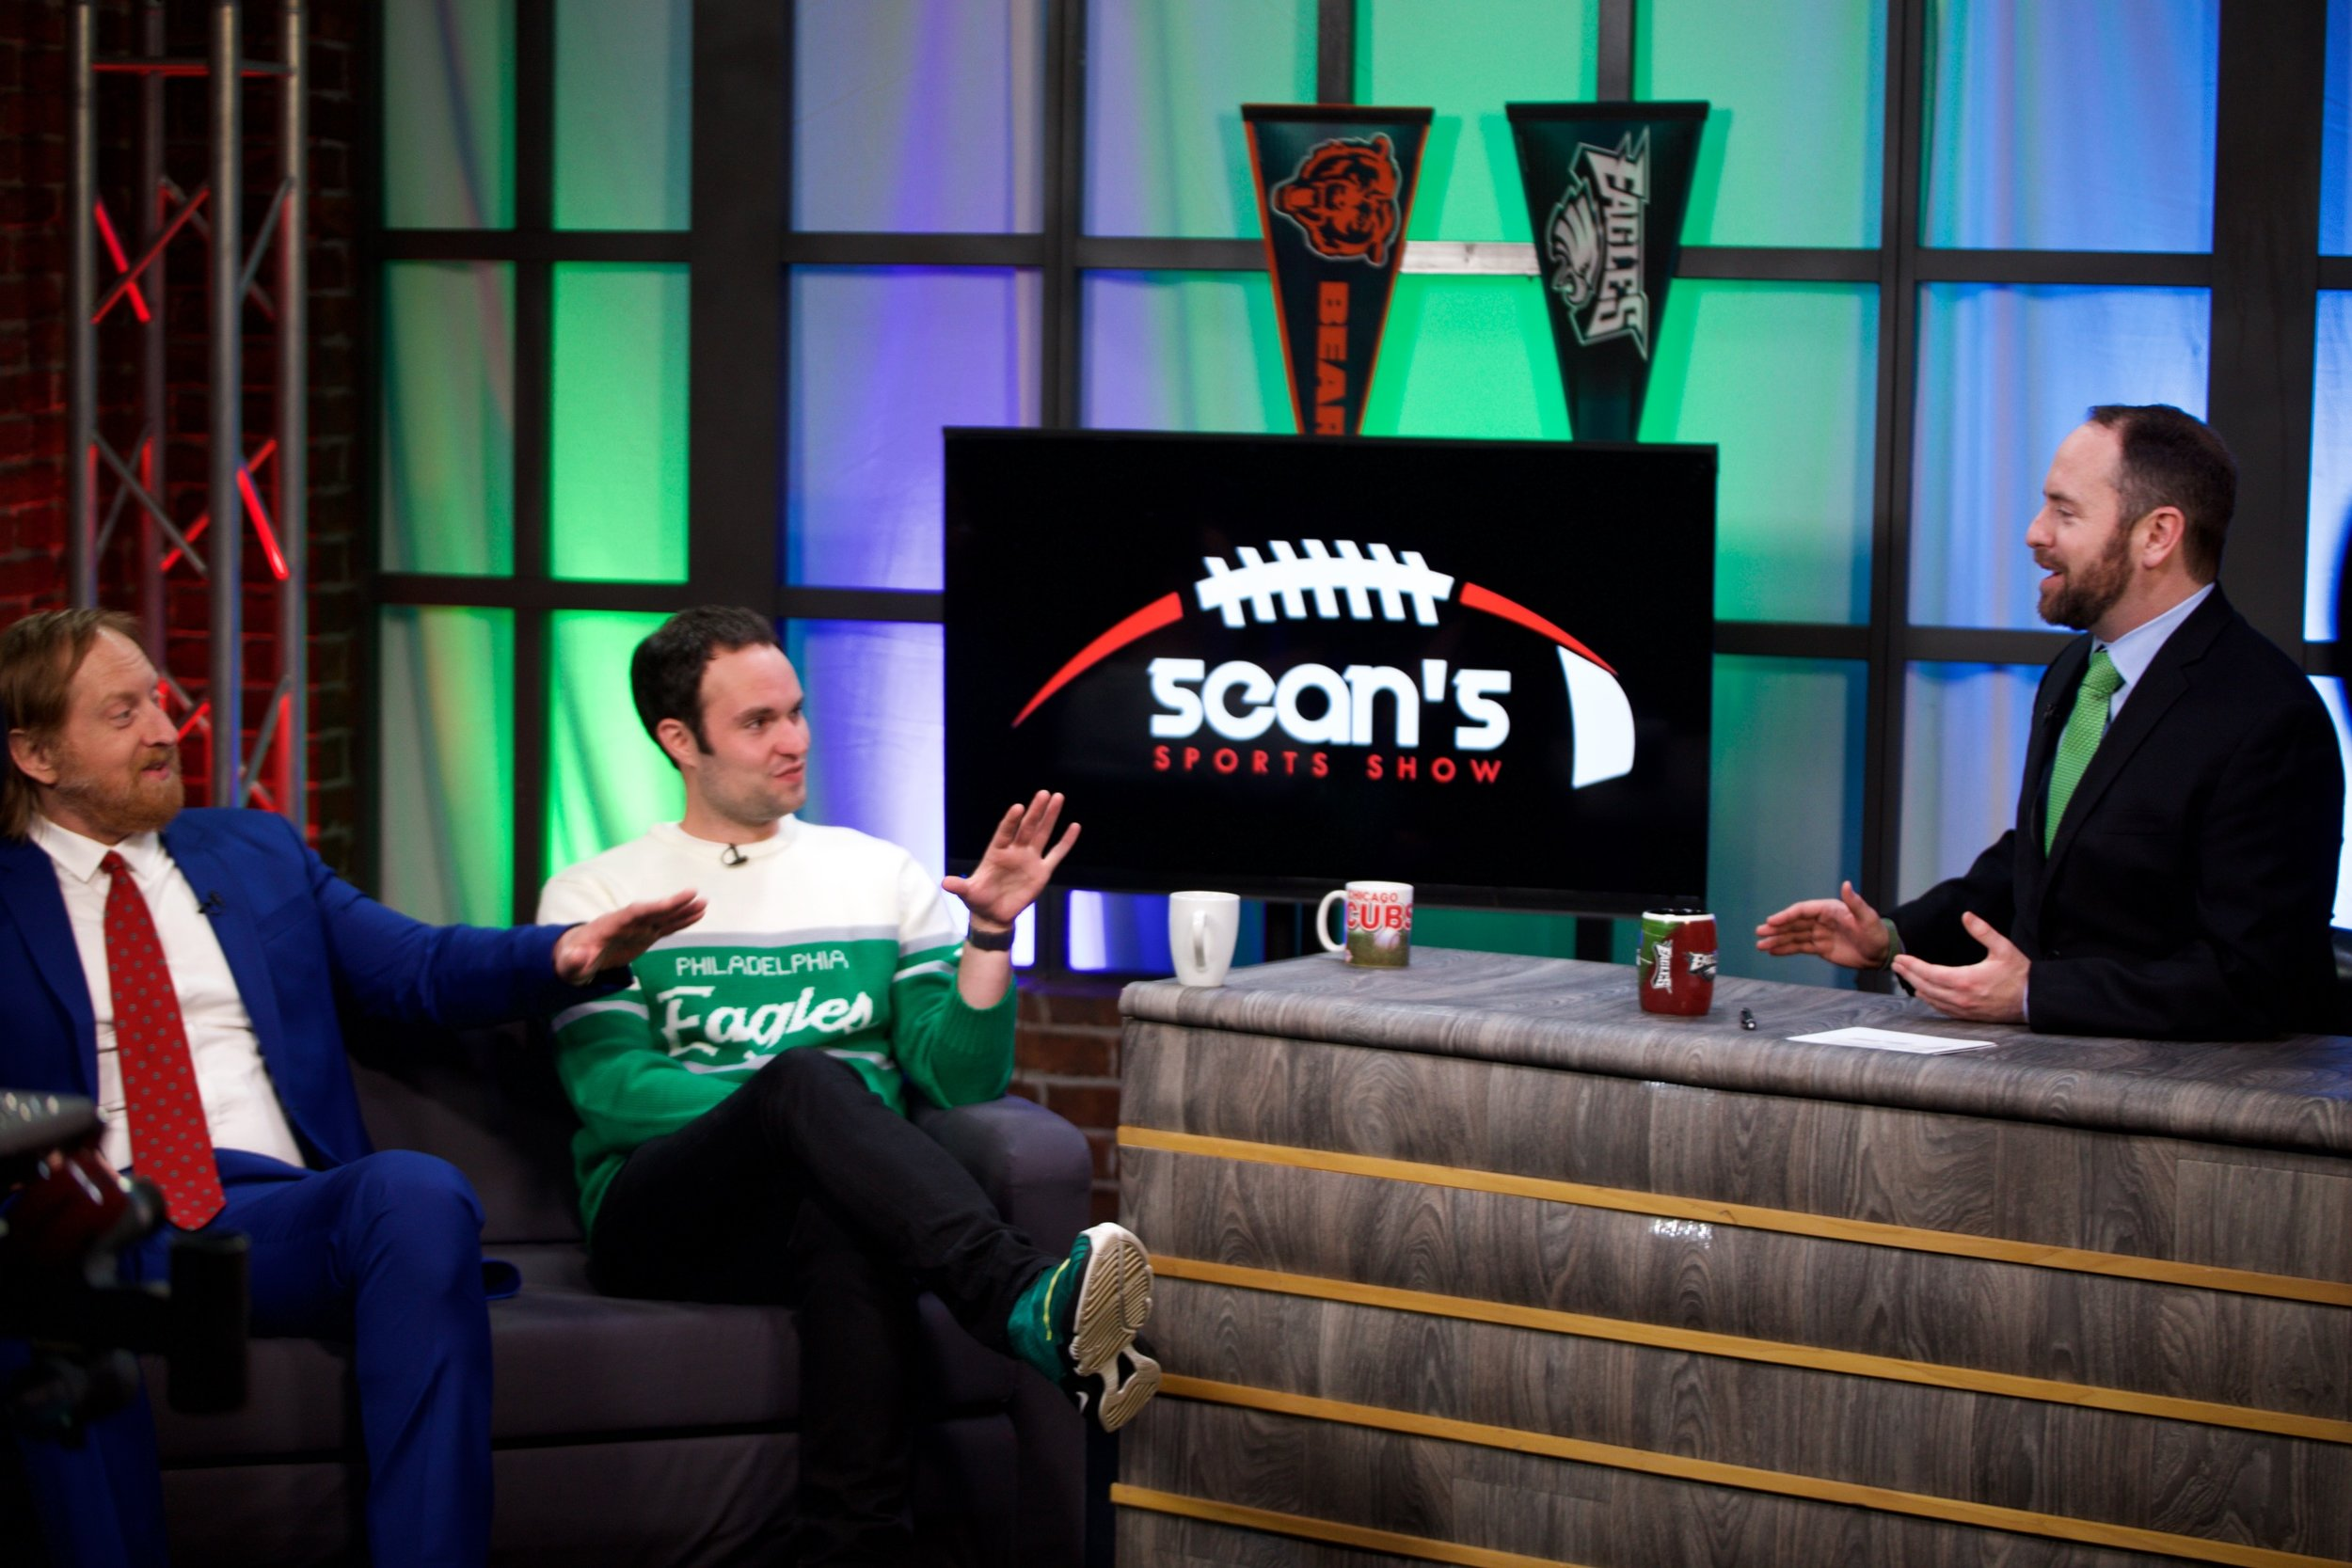 Seans Sports Show Sean Green 14.jpg